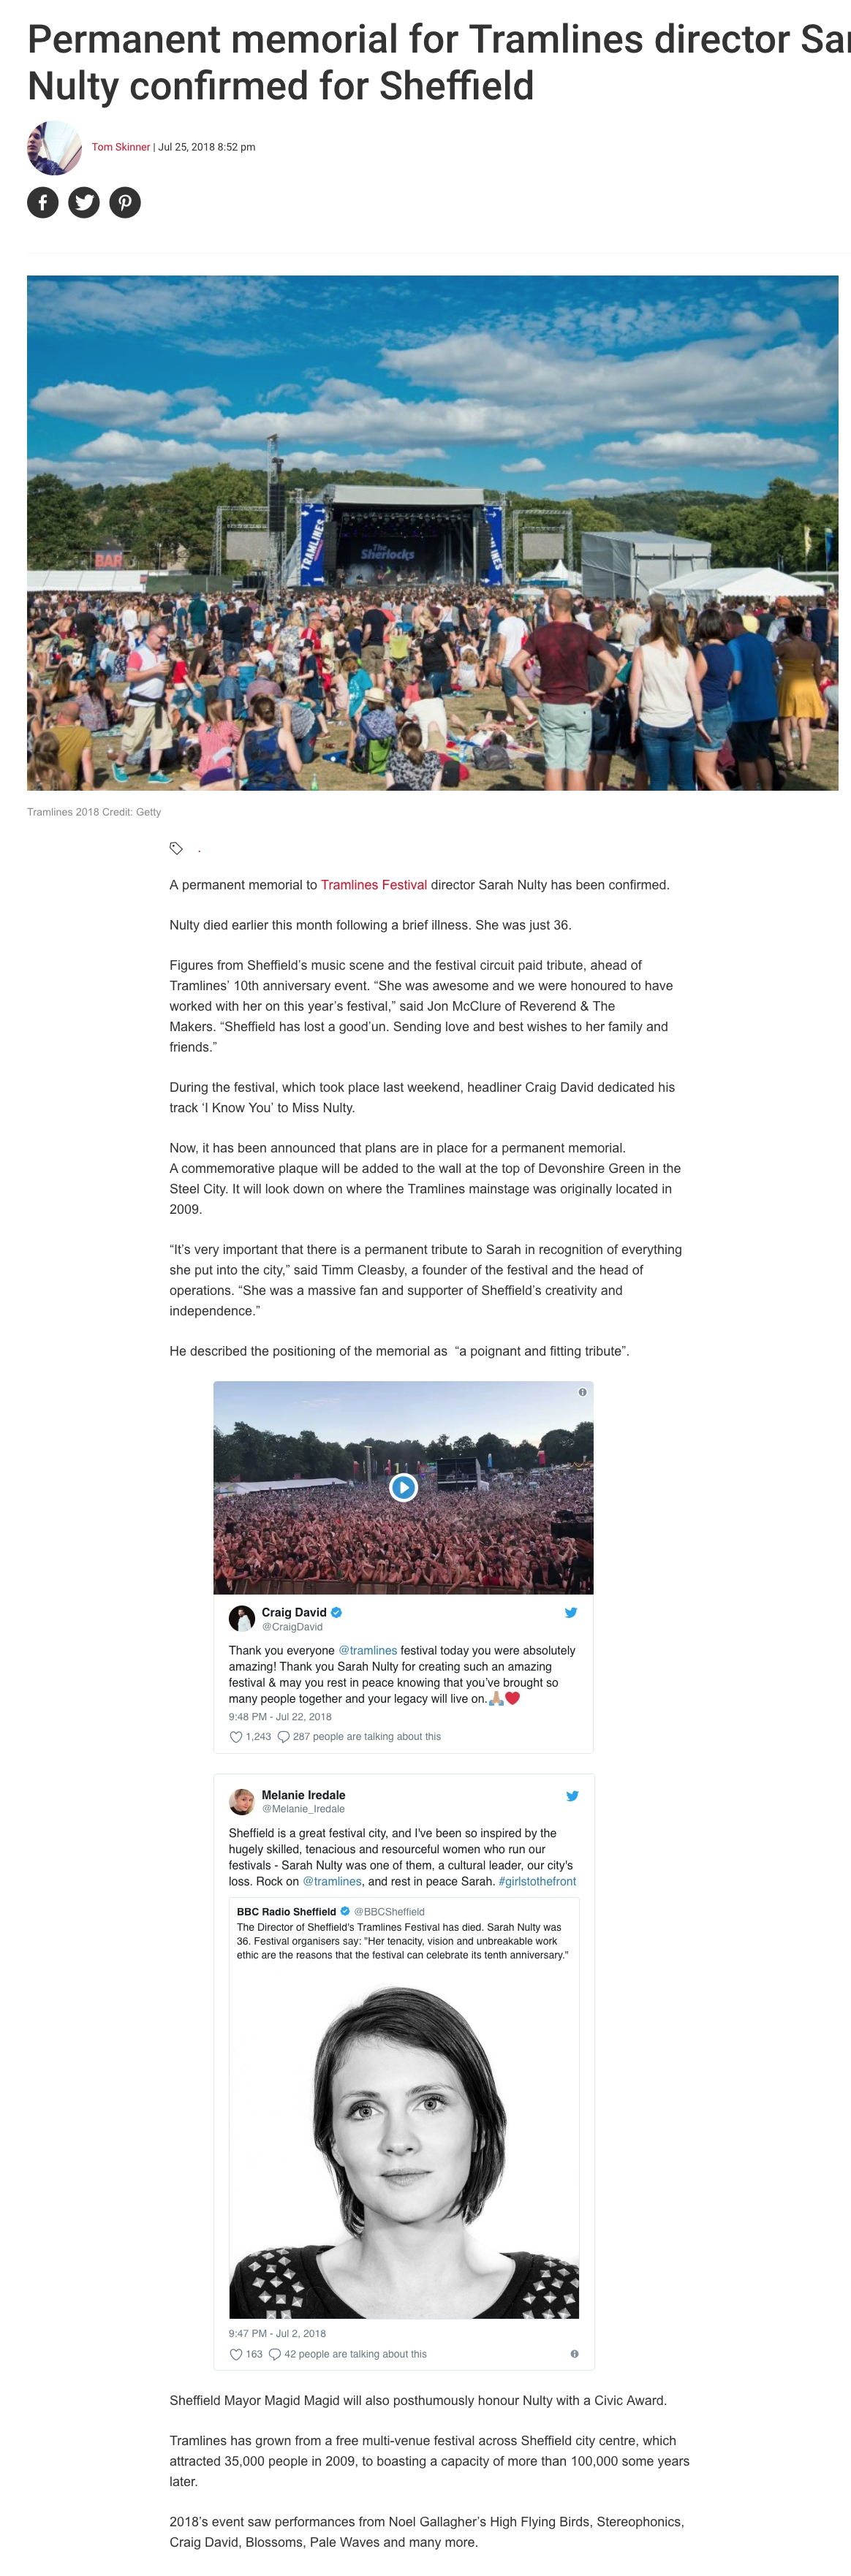 screenshot-www.nme.com-2018.08.29-08-51-29